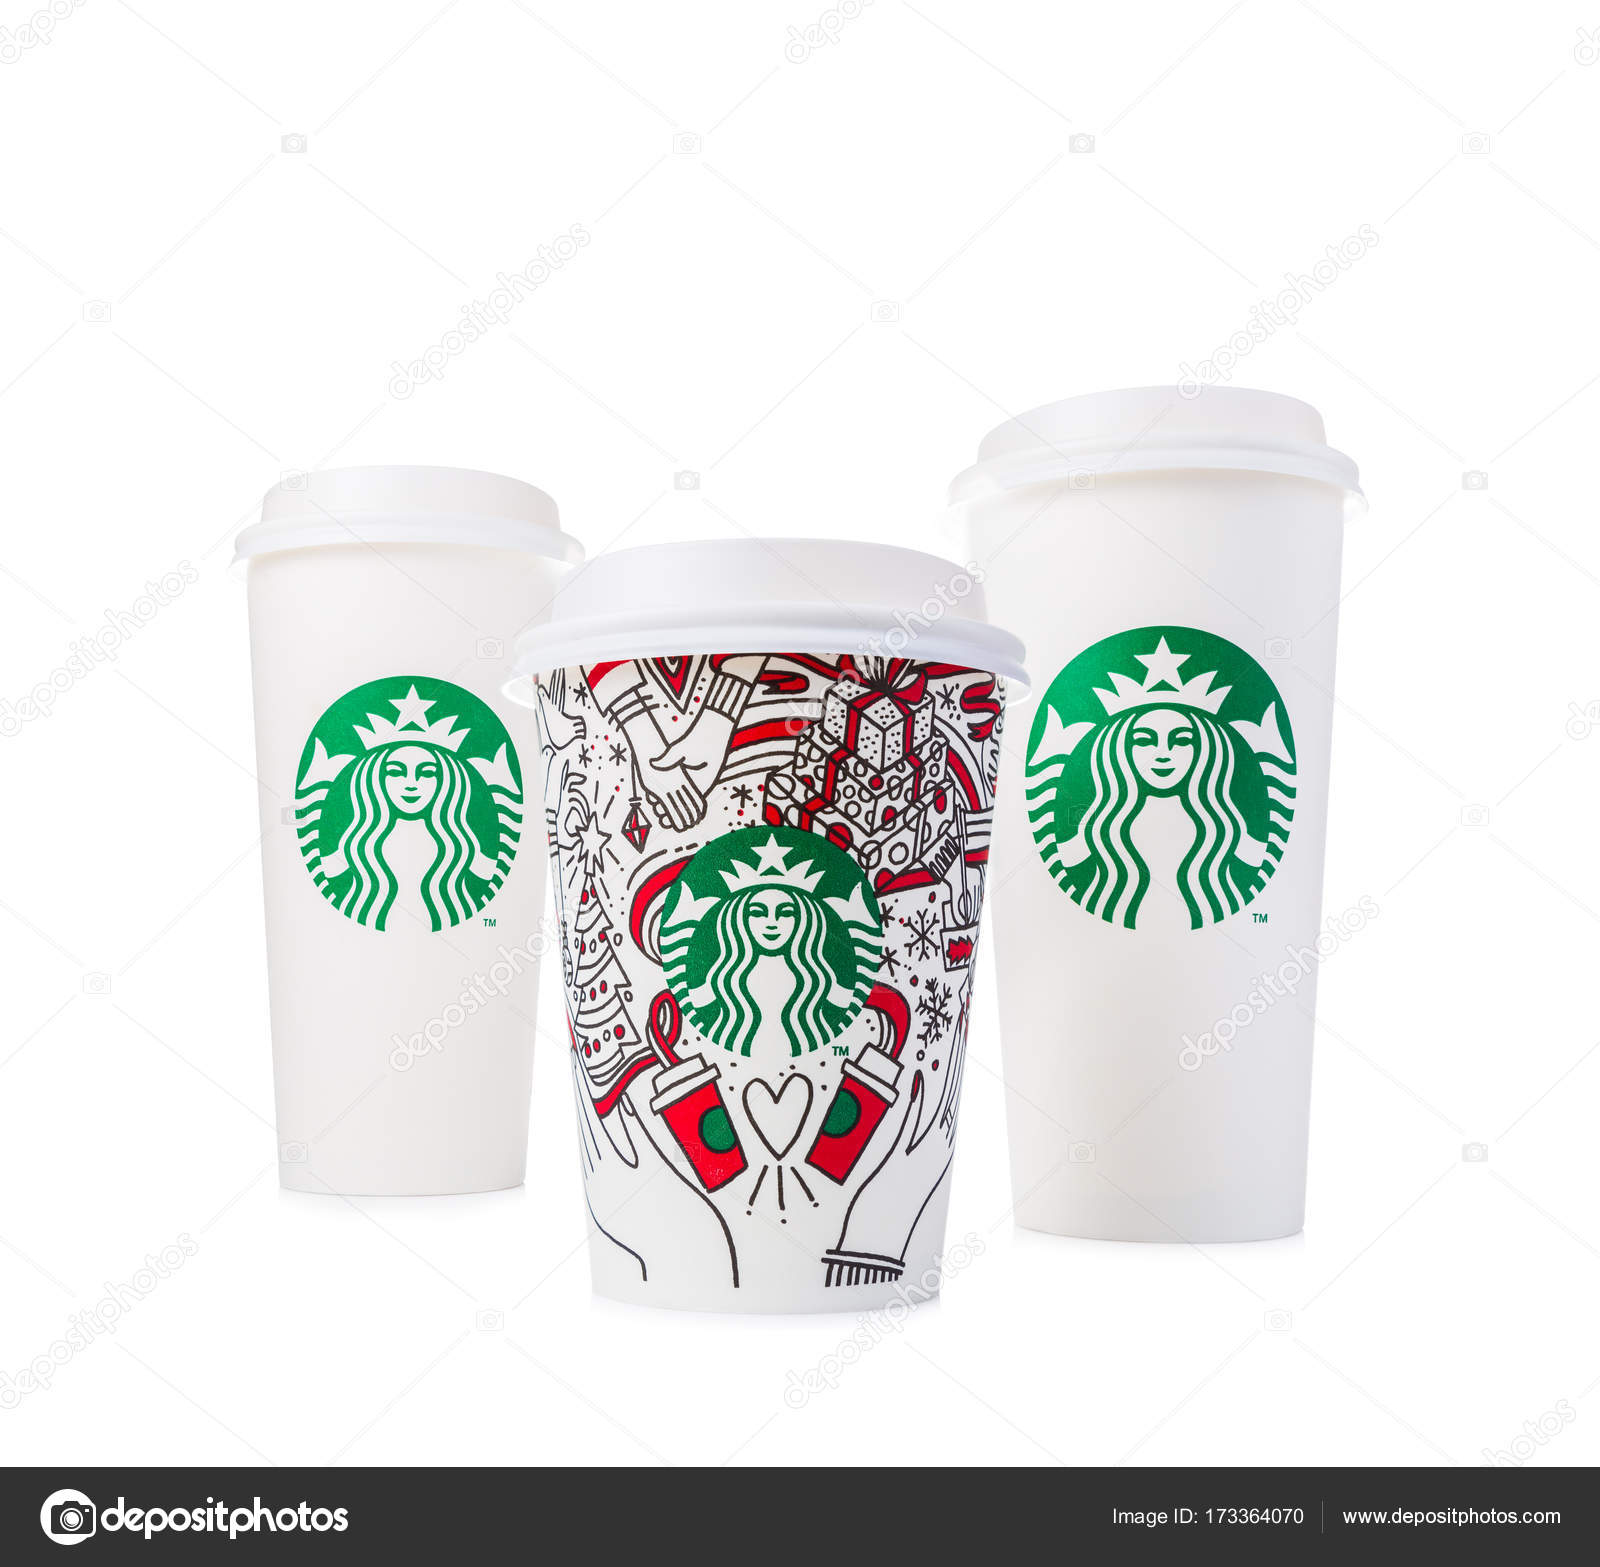 starbucks coffee on the go essay Nearly 60 billion paper cups end up in landfills in the us every year because  they can't be  starbucks cups aren't recyclable  something went wrong during  native playback  this starbucks coffee pours like a beer.